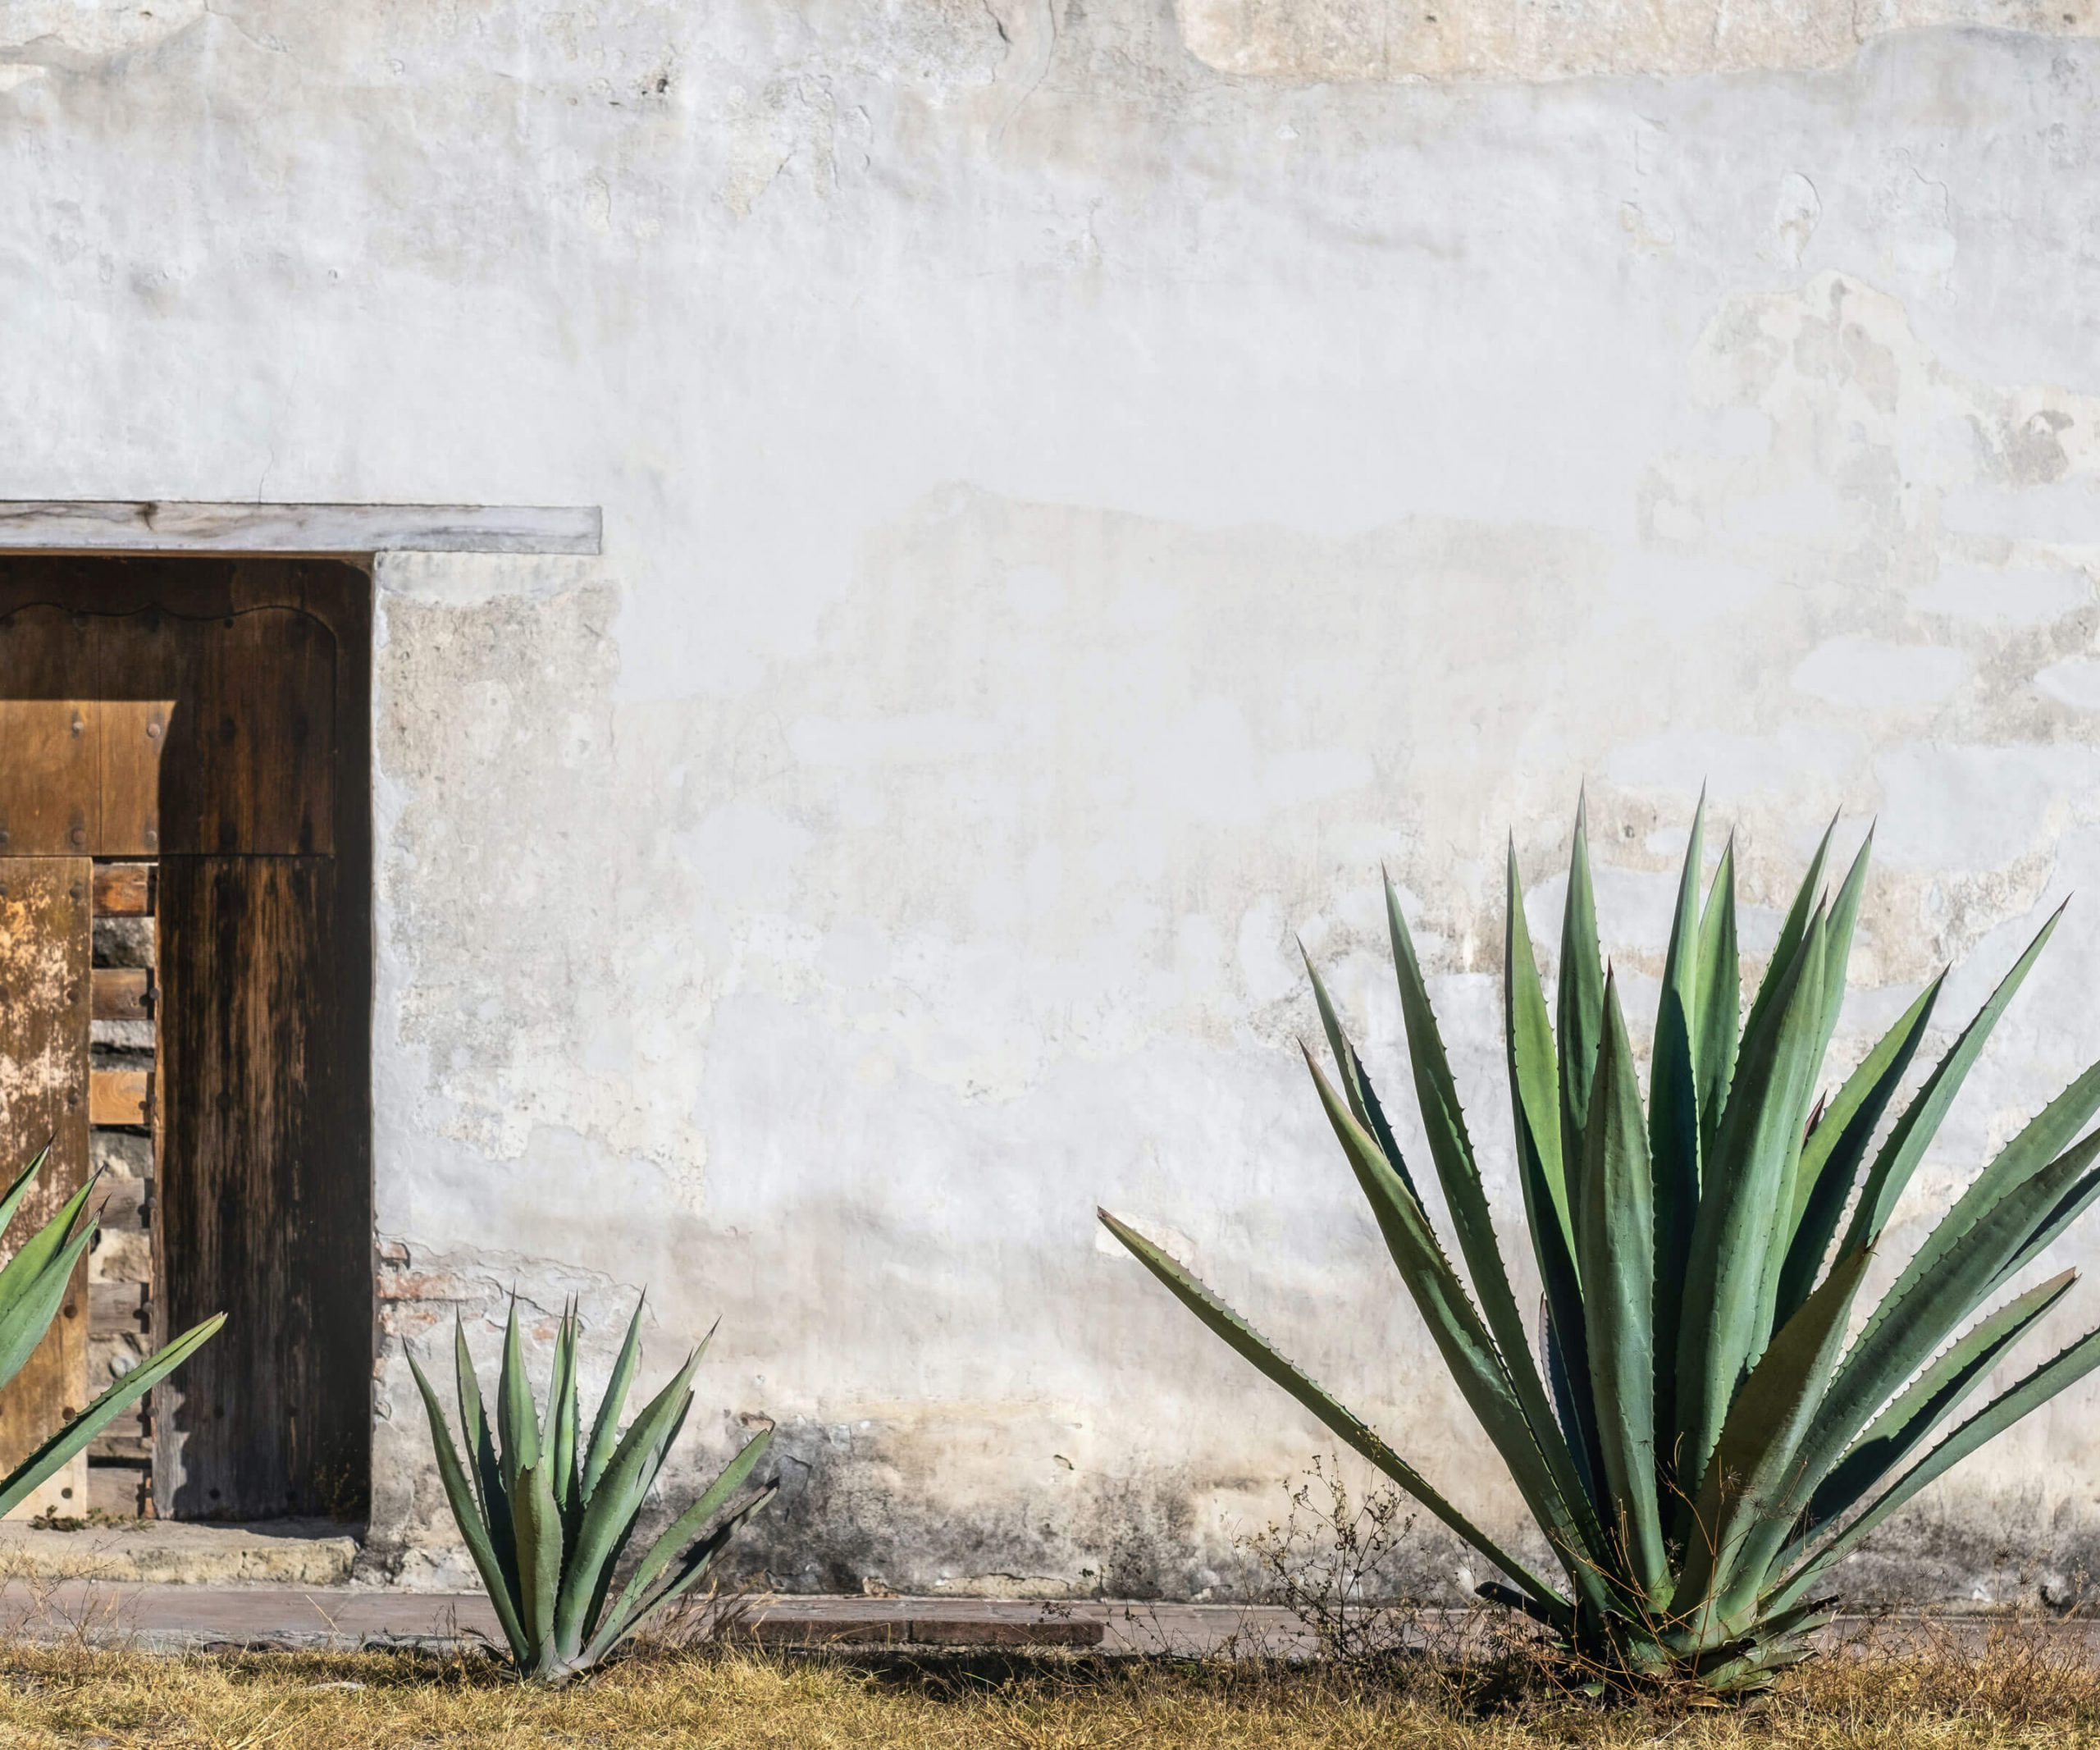 adobe wall with agave in pénjamo, guanajuato, mexico